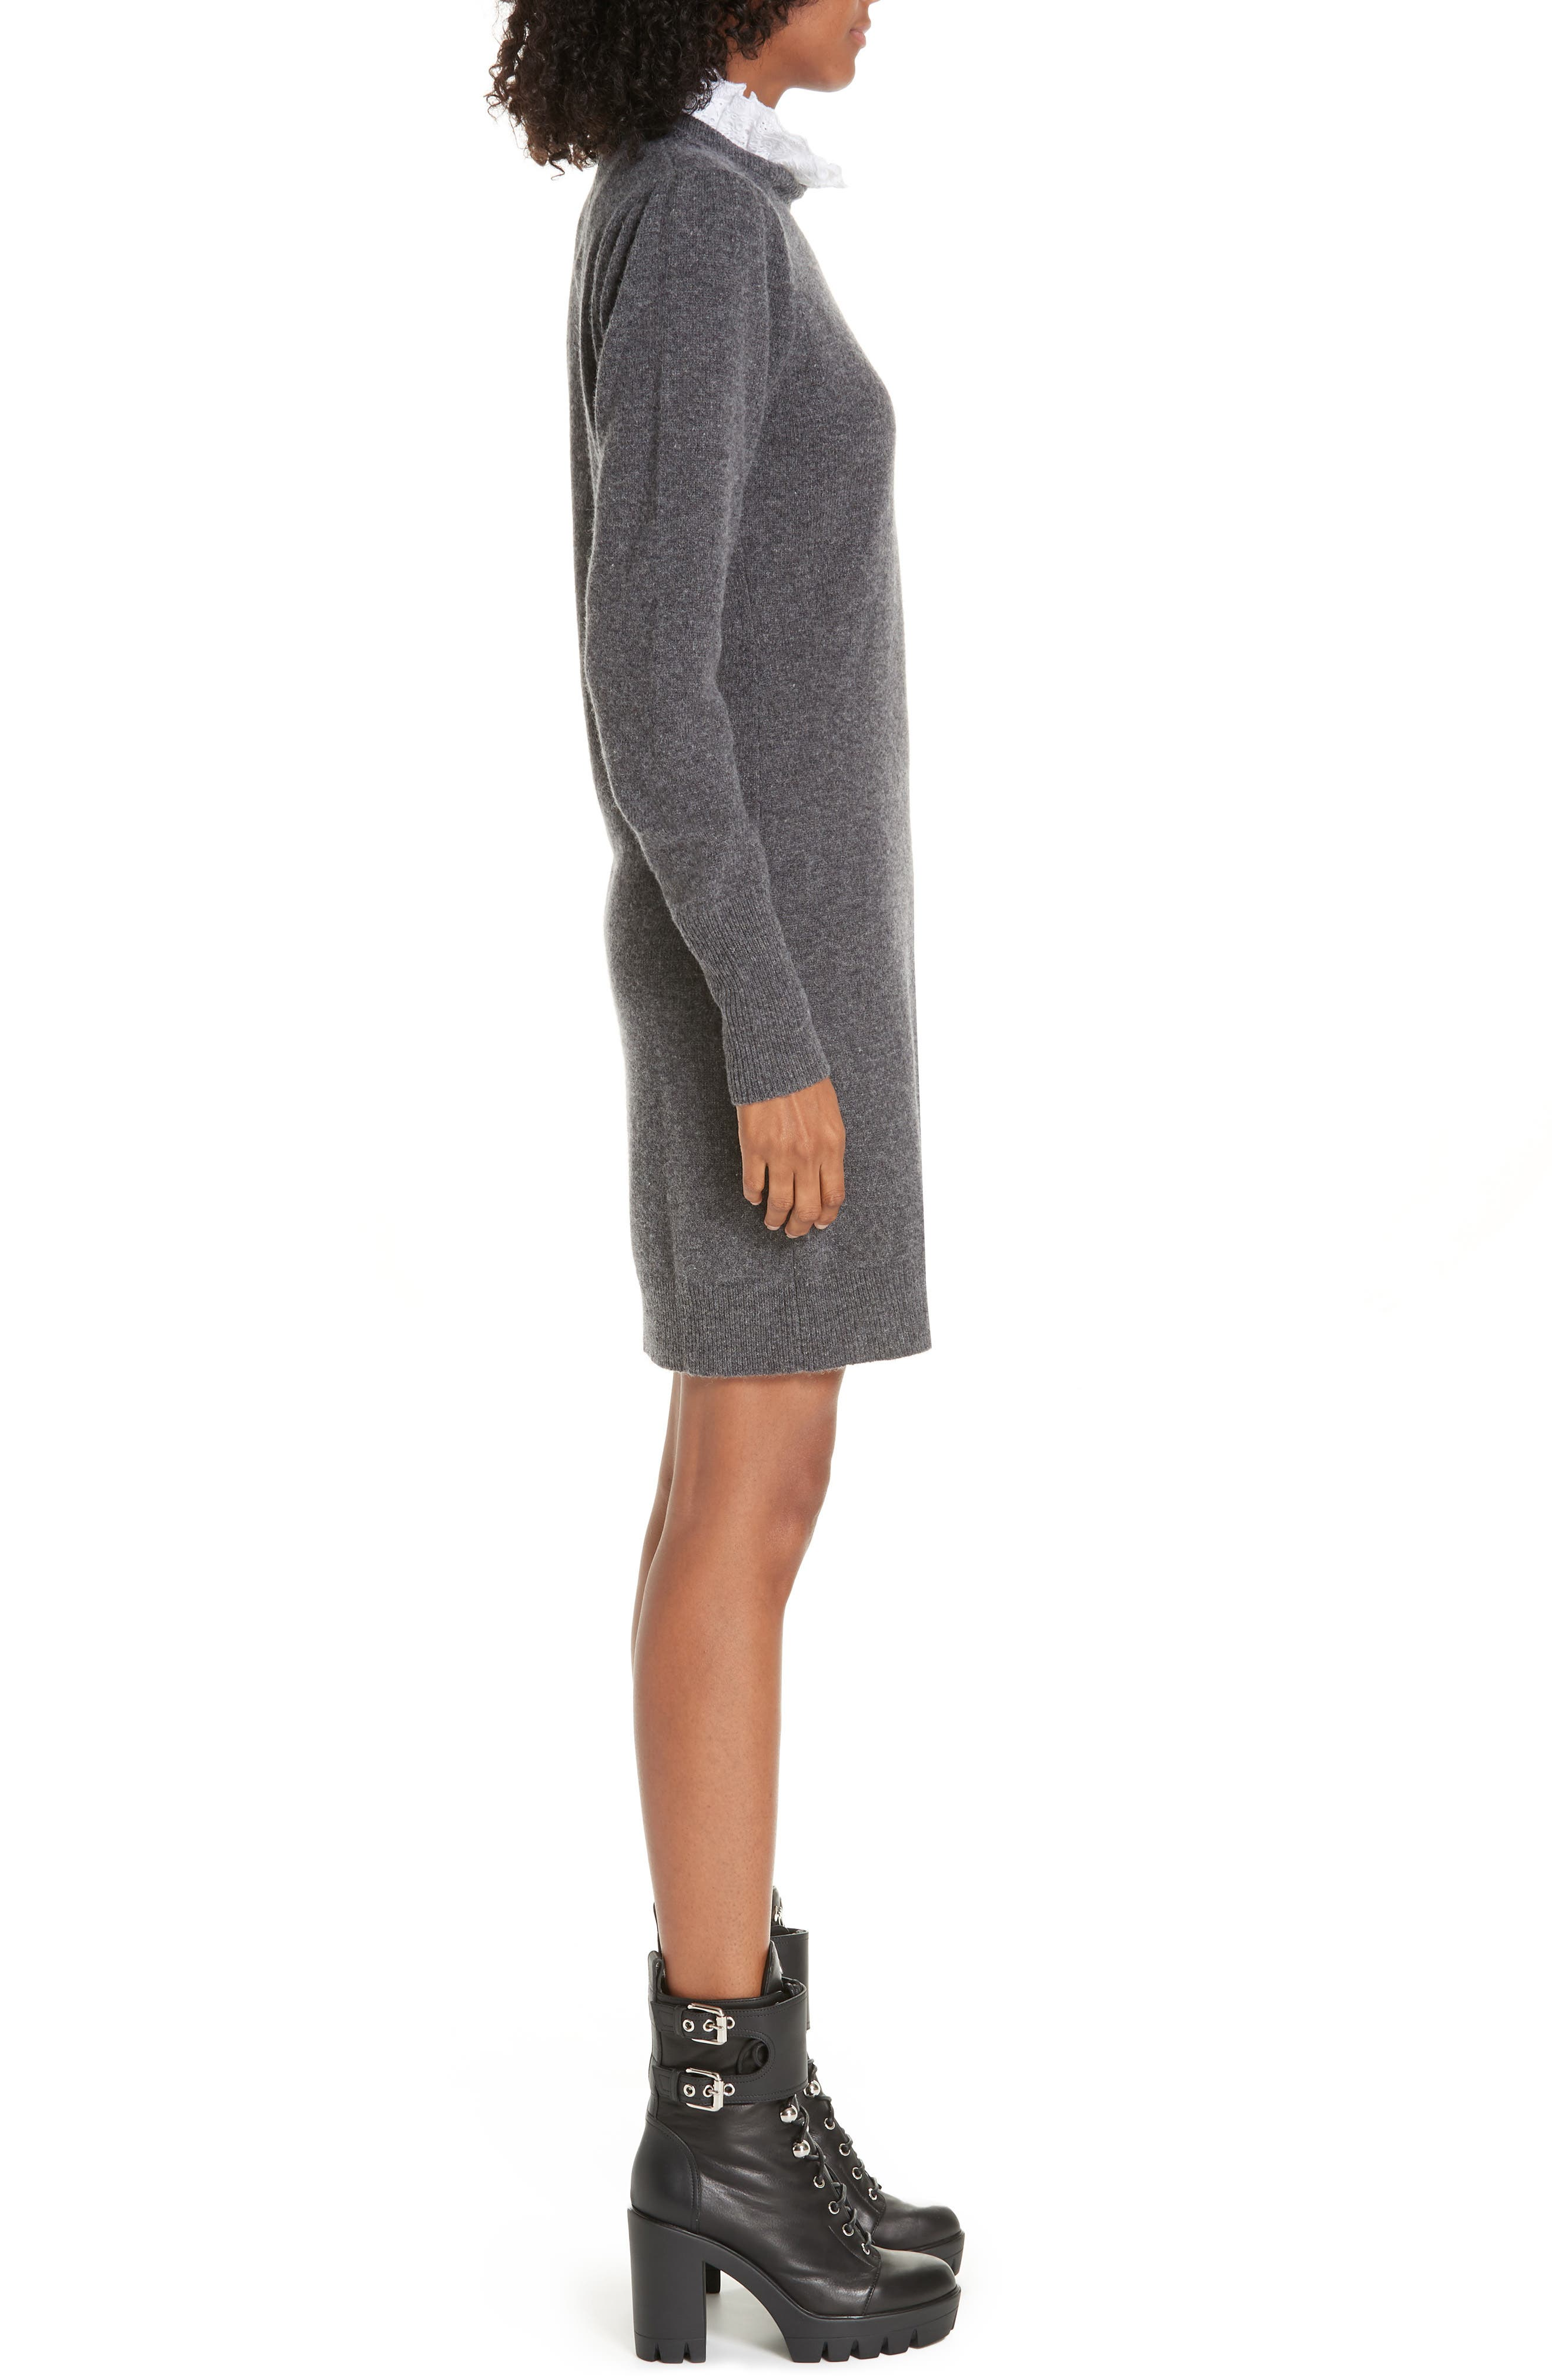 Ancolie Eyelet Collar Sweater Dress,                             Alternate thumbnail 3, color,                             020